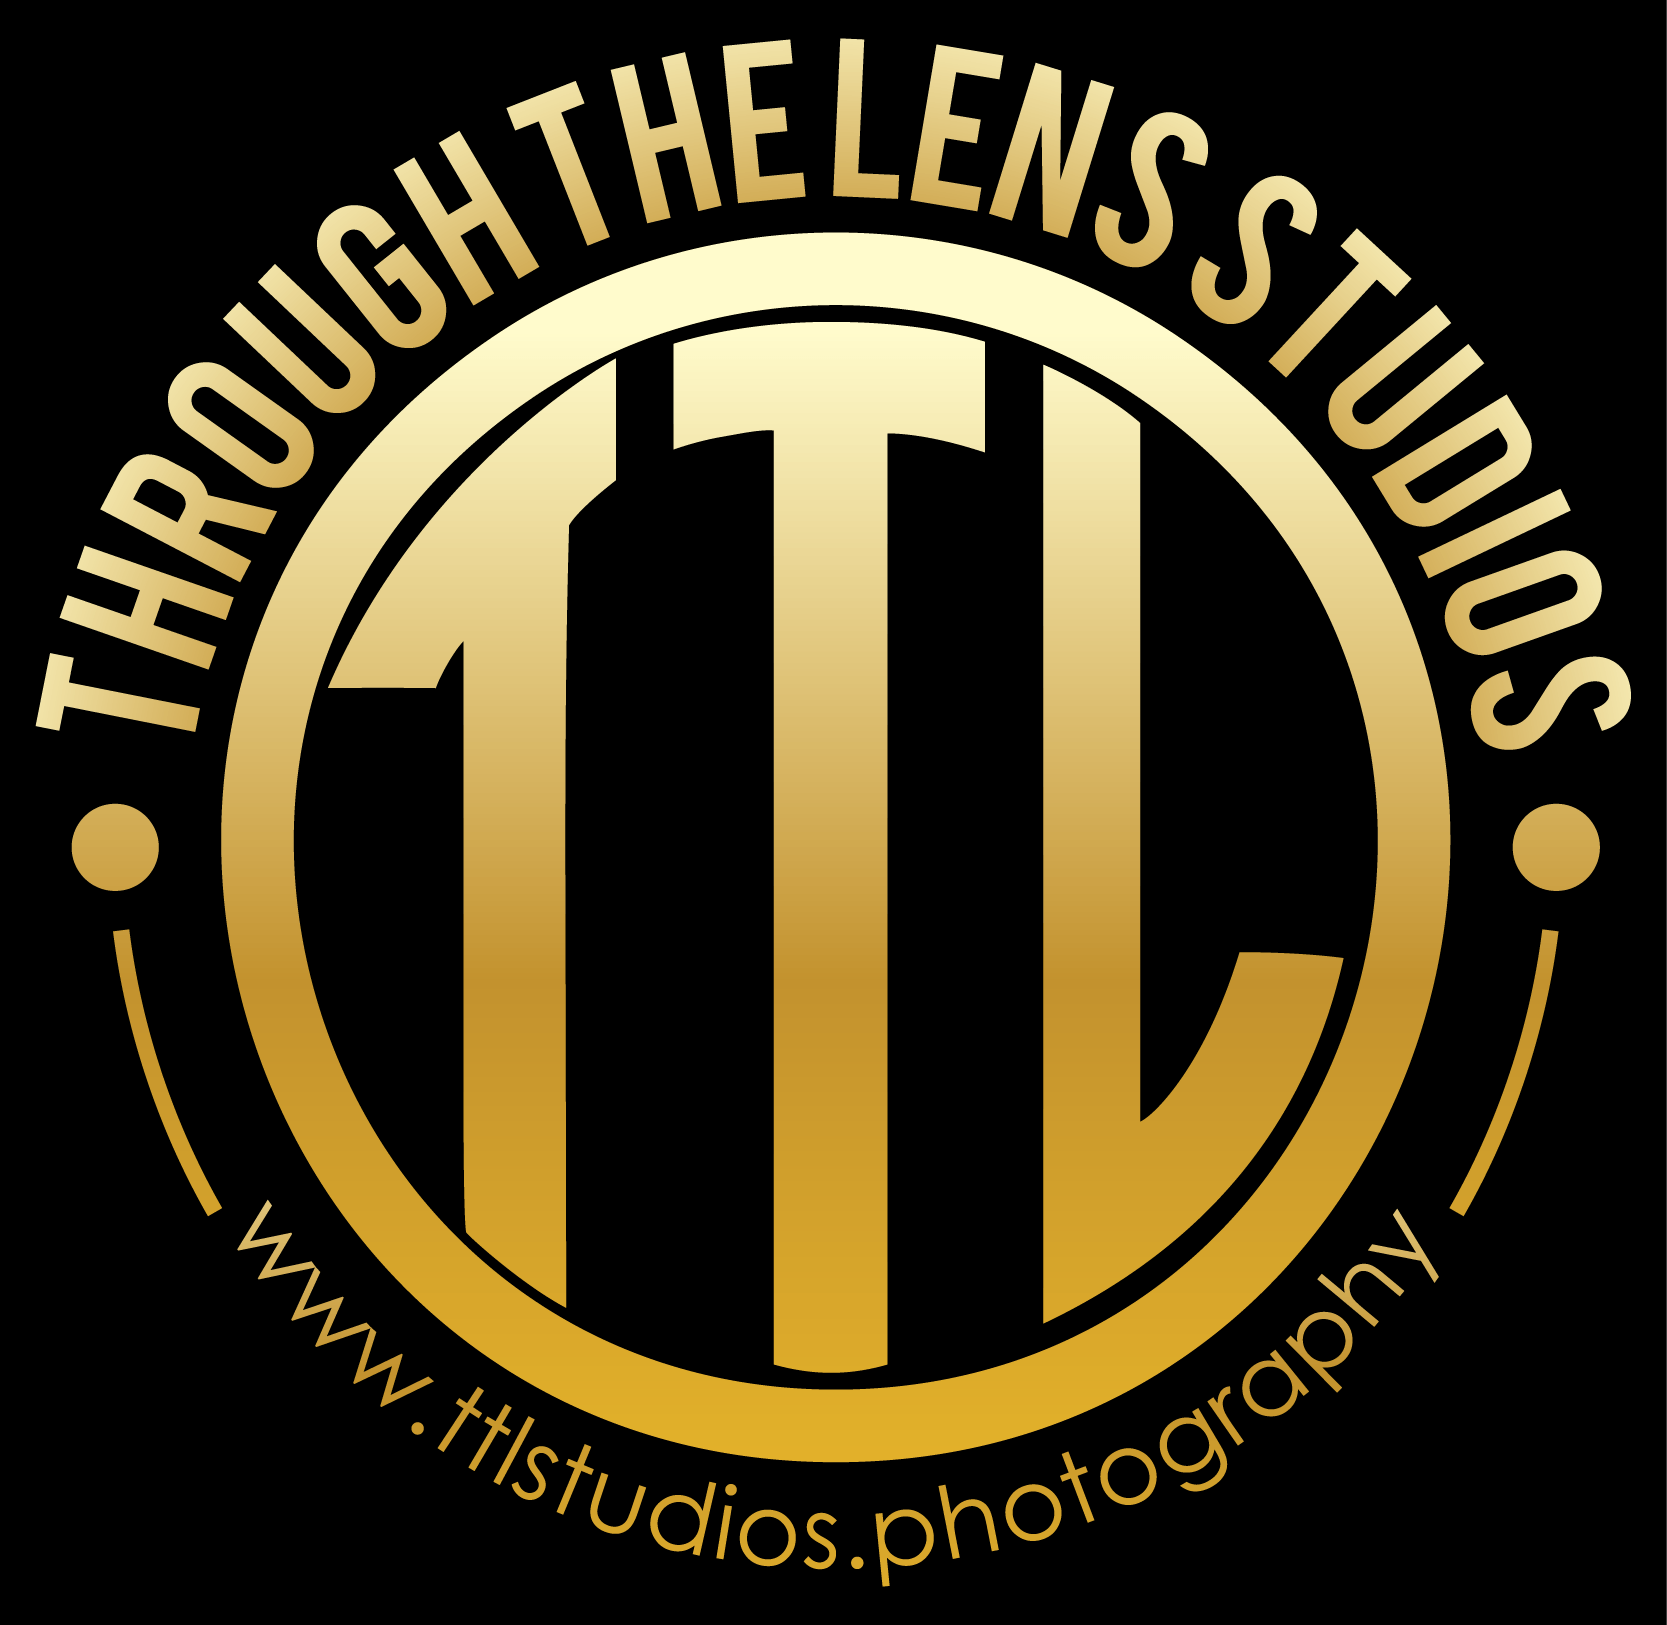 TTL Studios Photography Offers Wedding and Family Photography Services in FL, Especially on Clearwater Beach